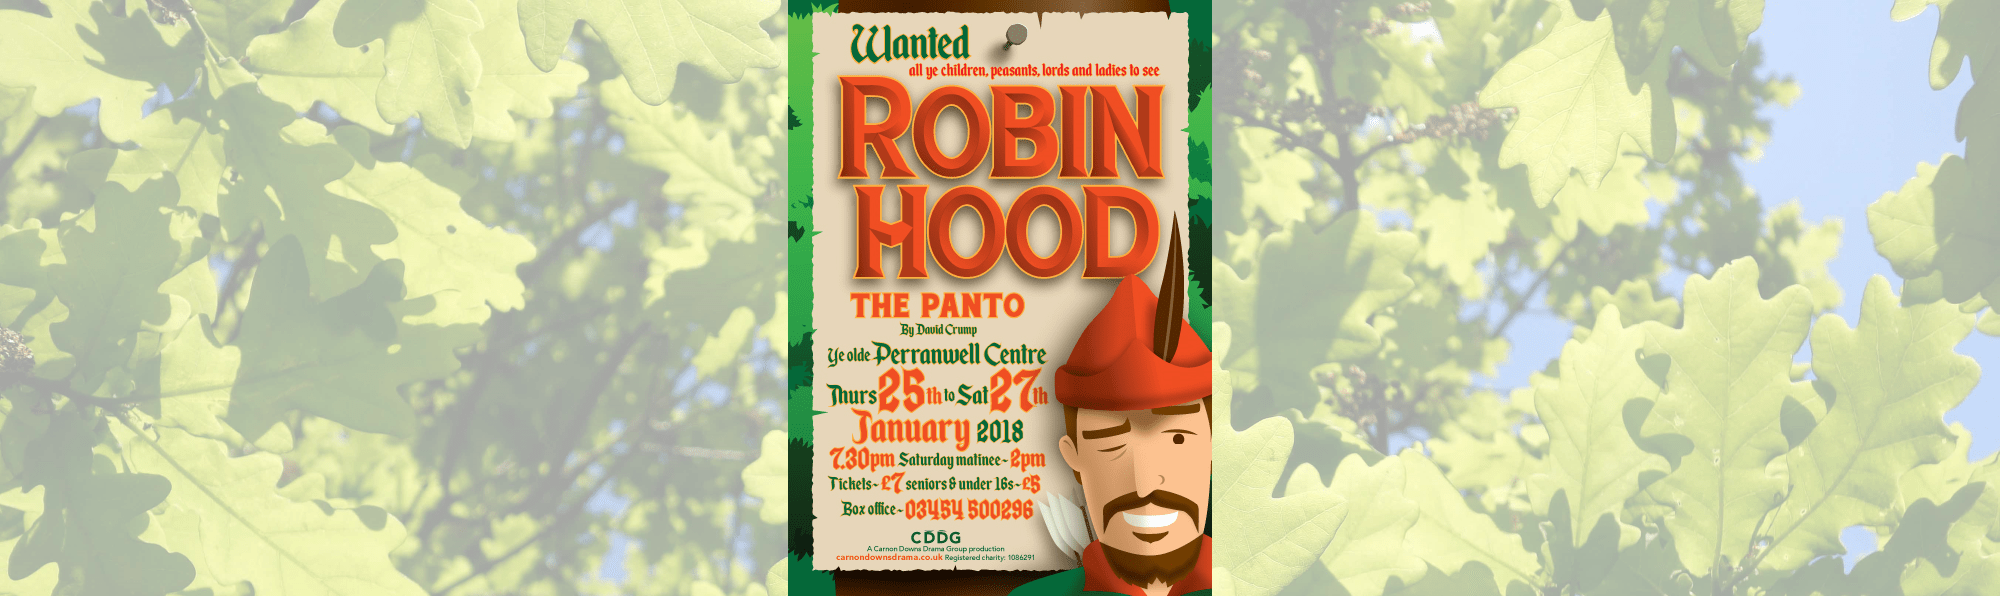 Robin Hood - The Panto